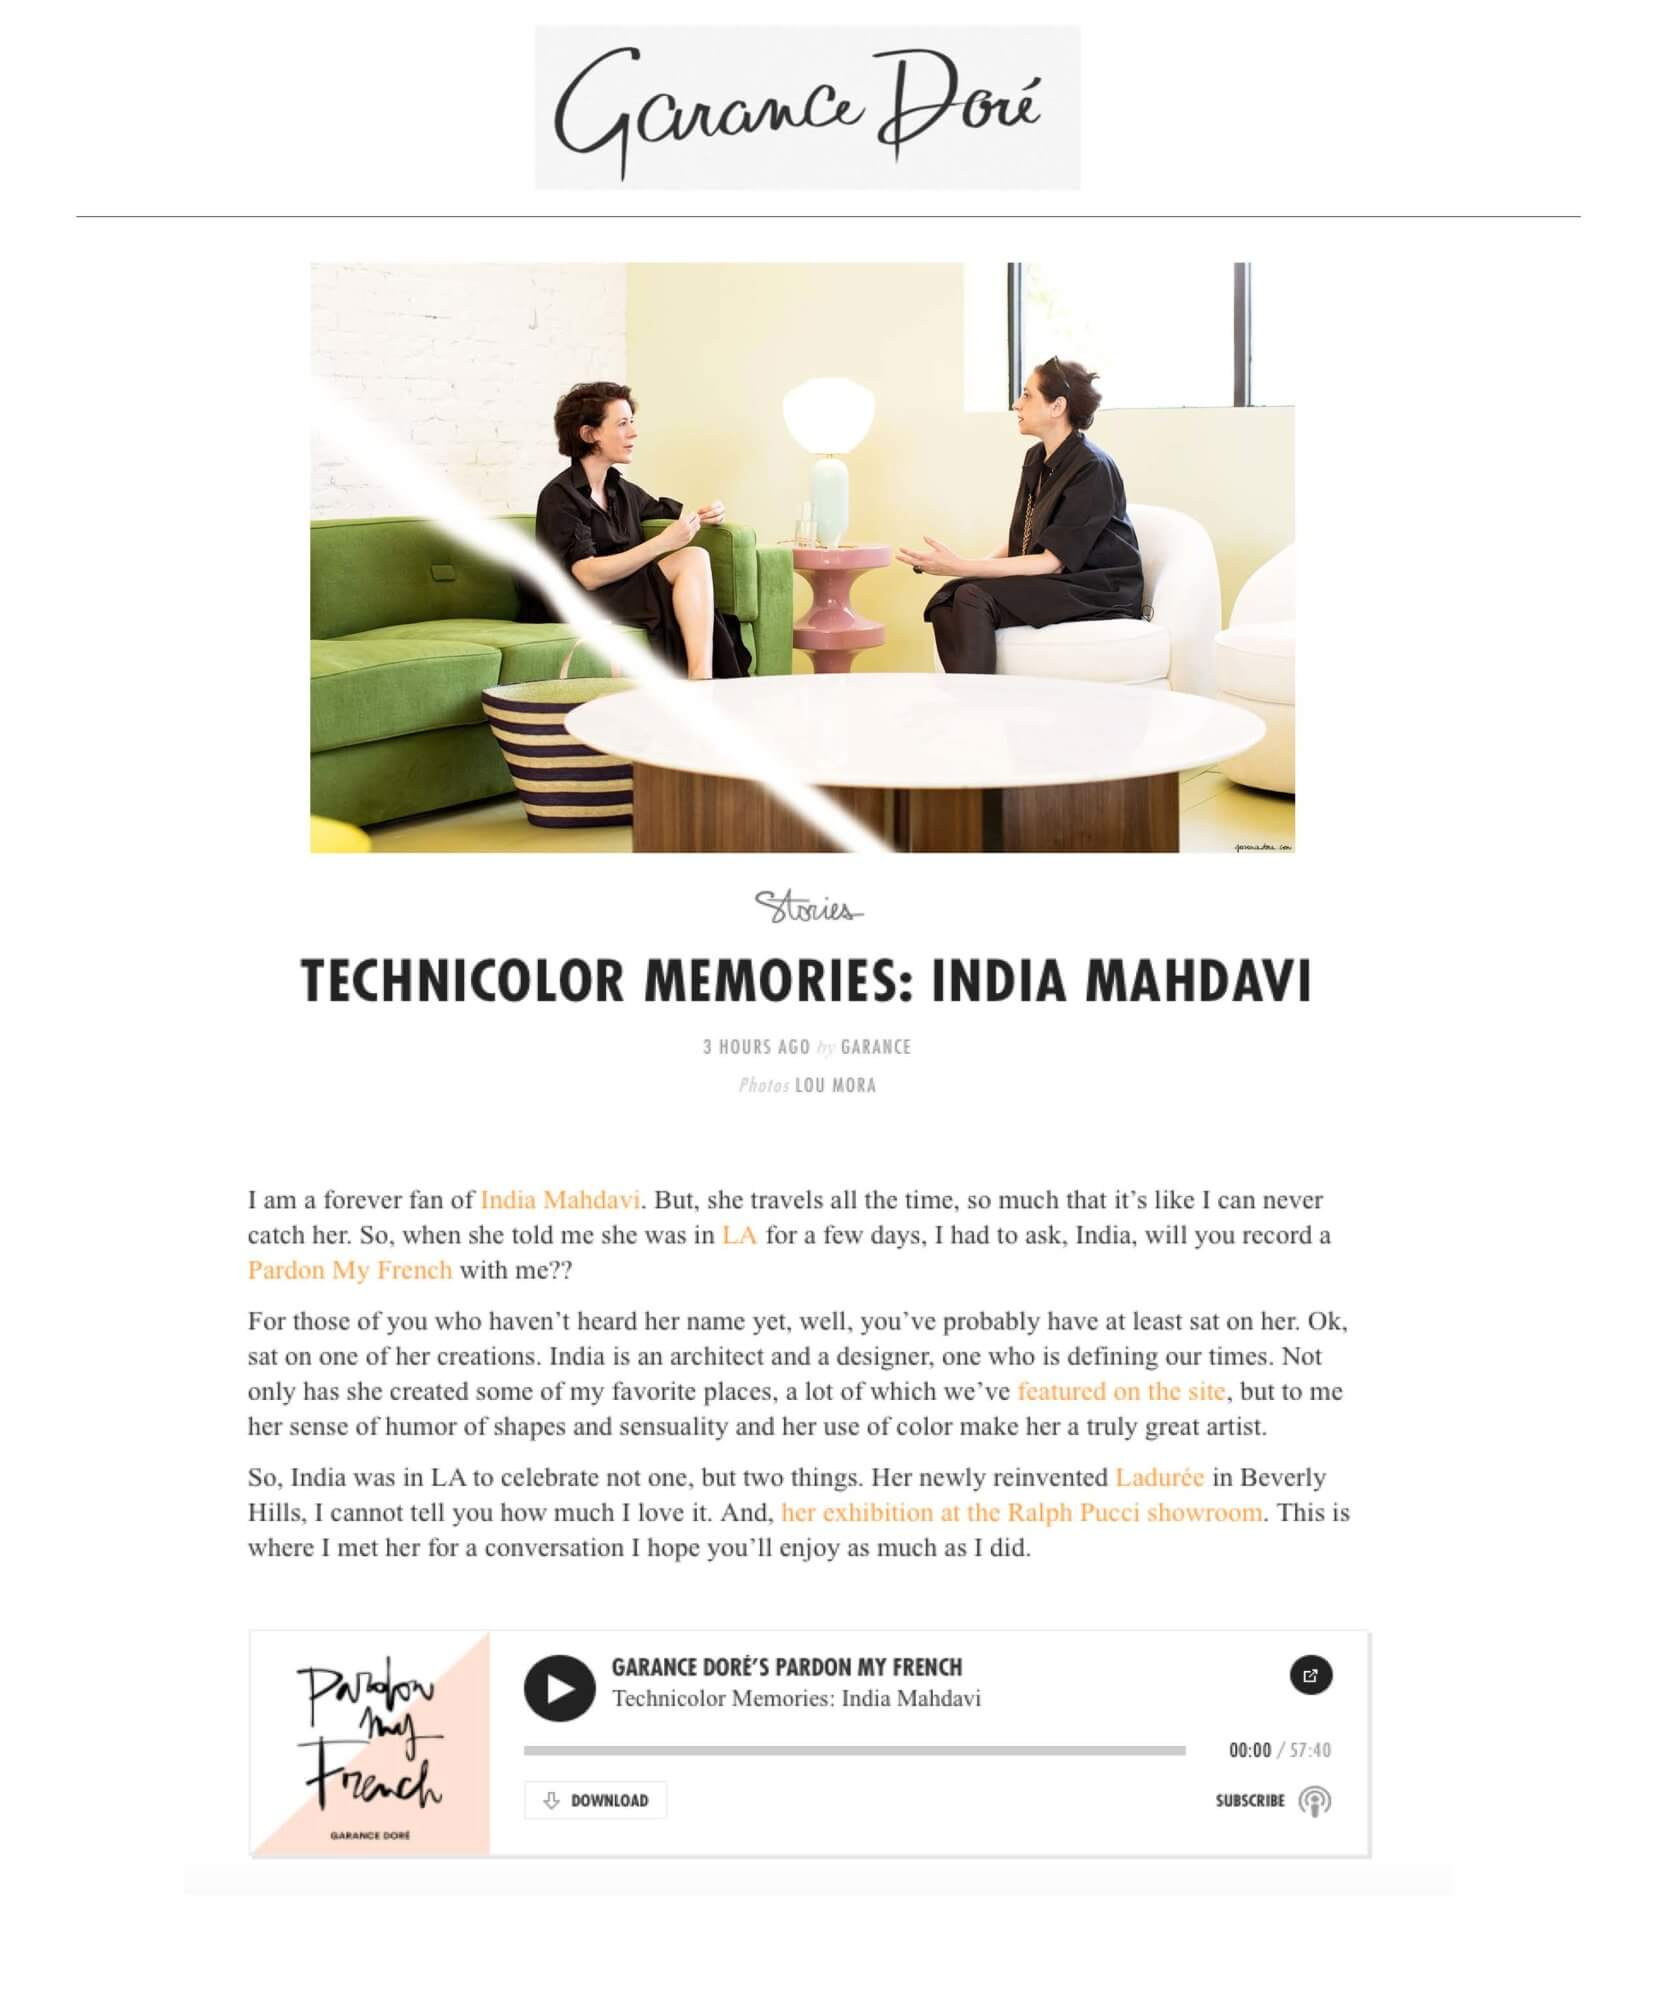 Technicolors memories: India Mahdavi - India Mahdavi